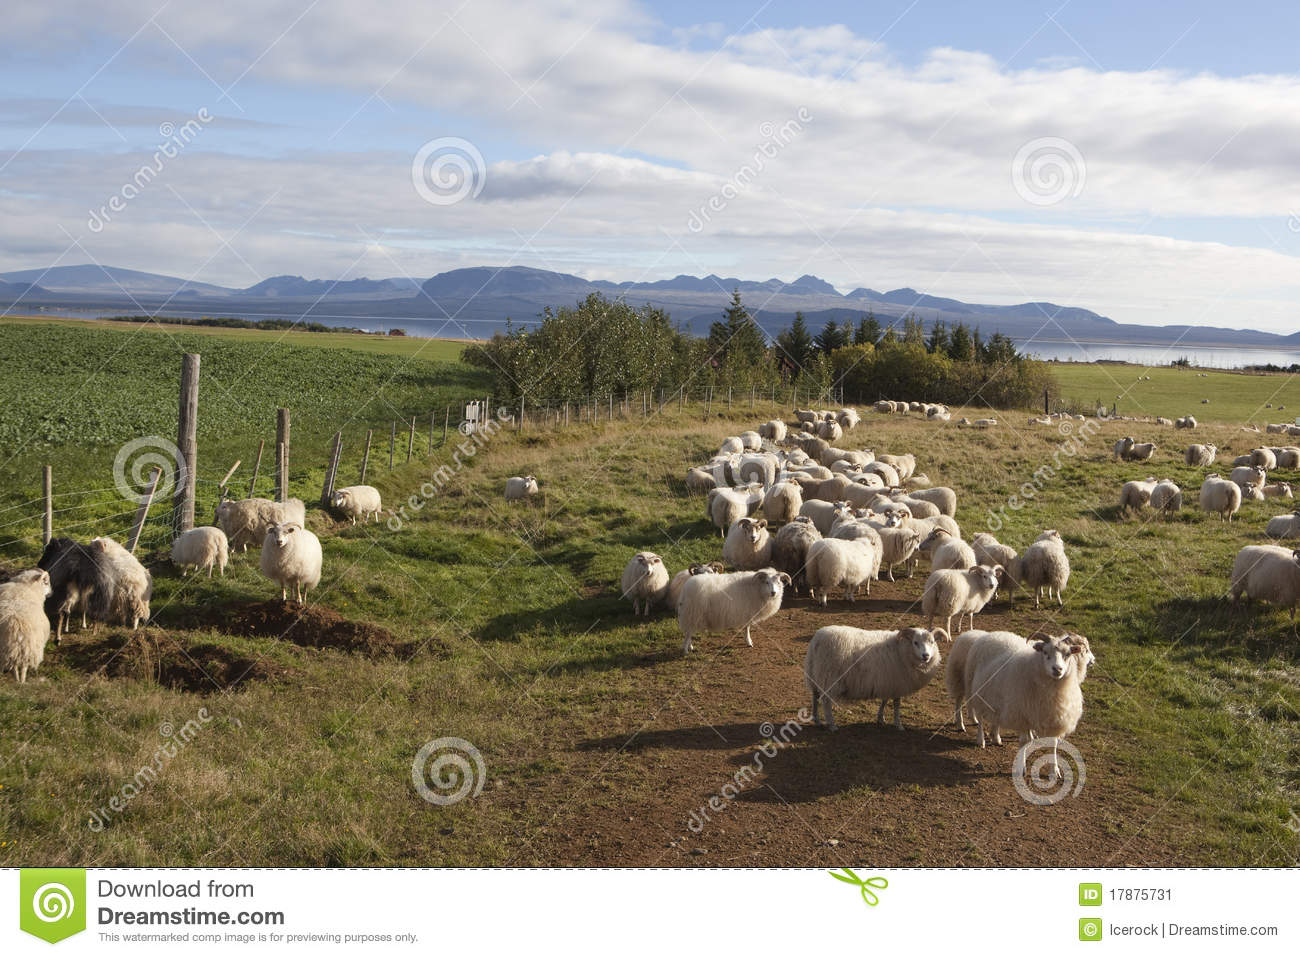 Sheep In Corral Stock Image - Image: 36233191